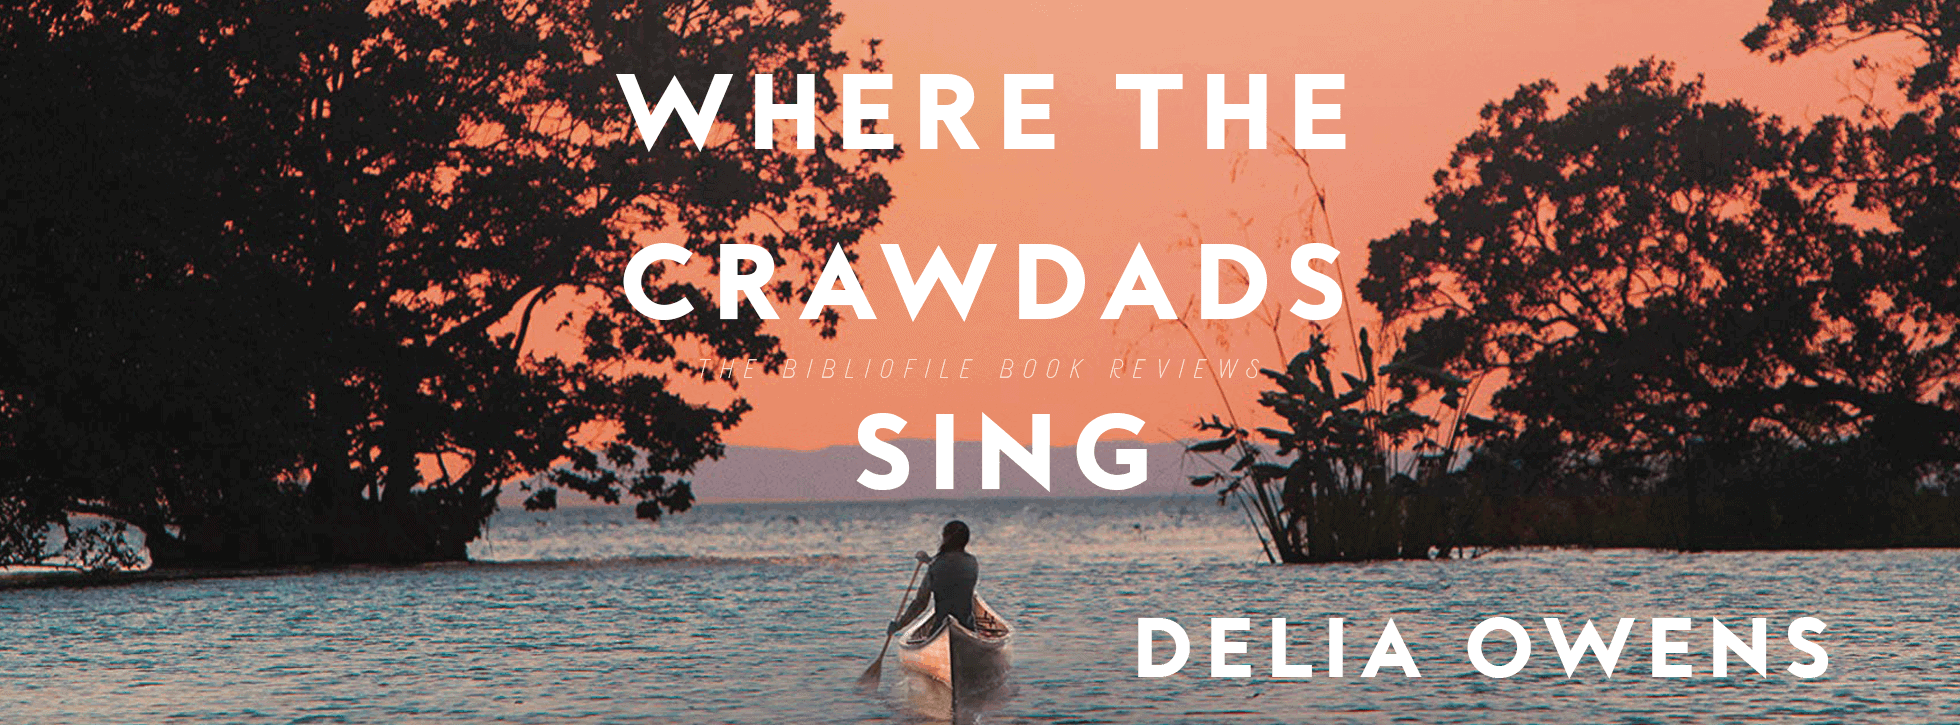 Where the Crawdads Sing Delia Owens book summary plot synopsis ending spoilers explanation